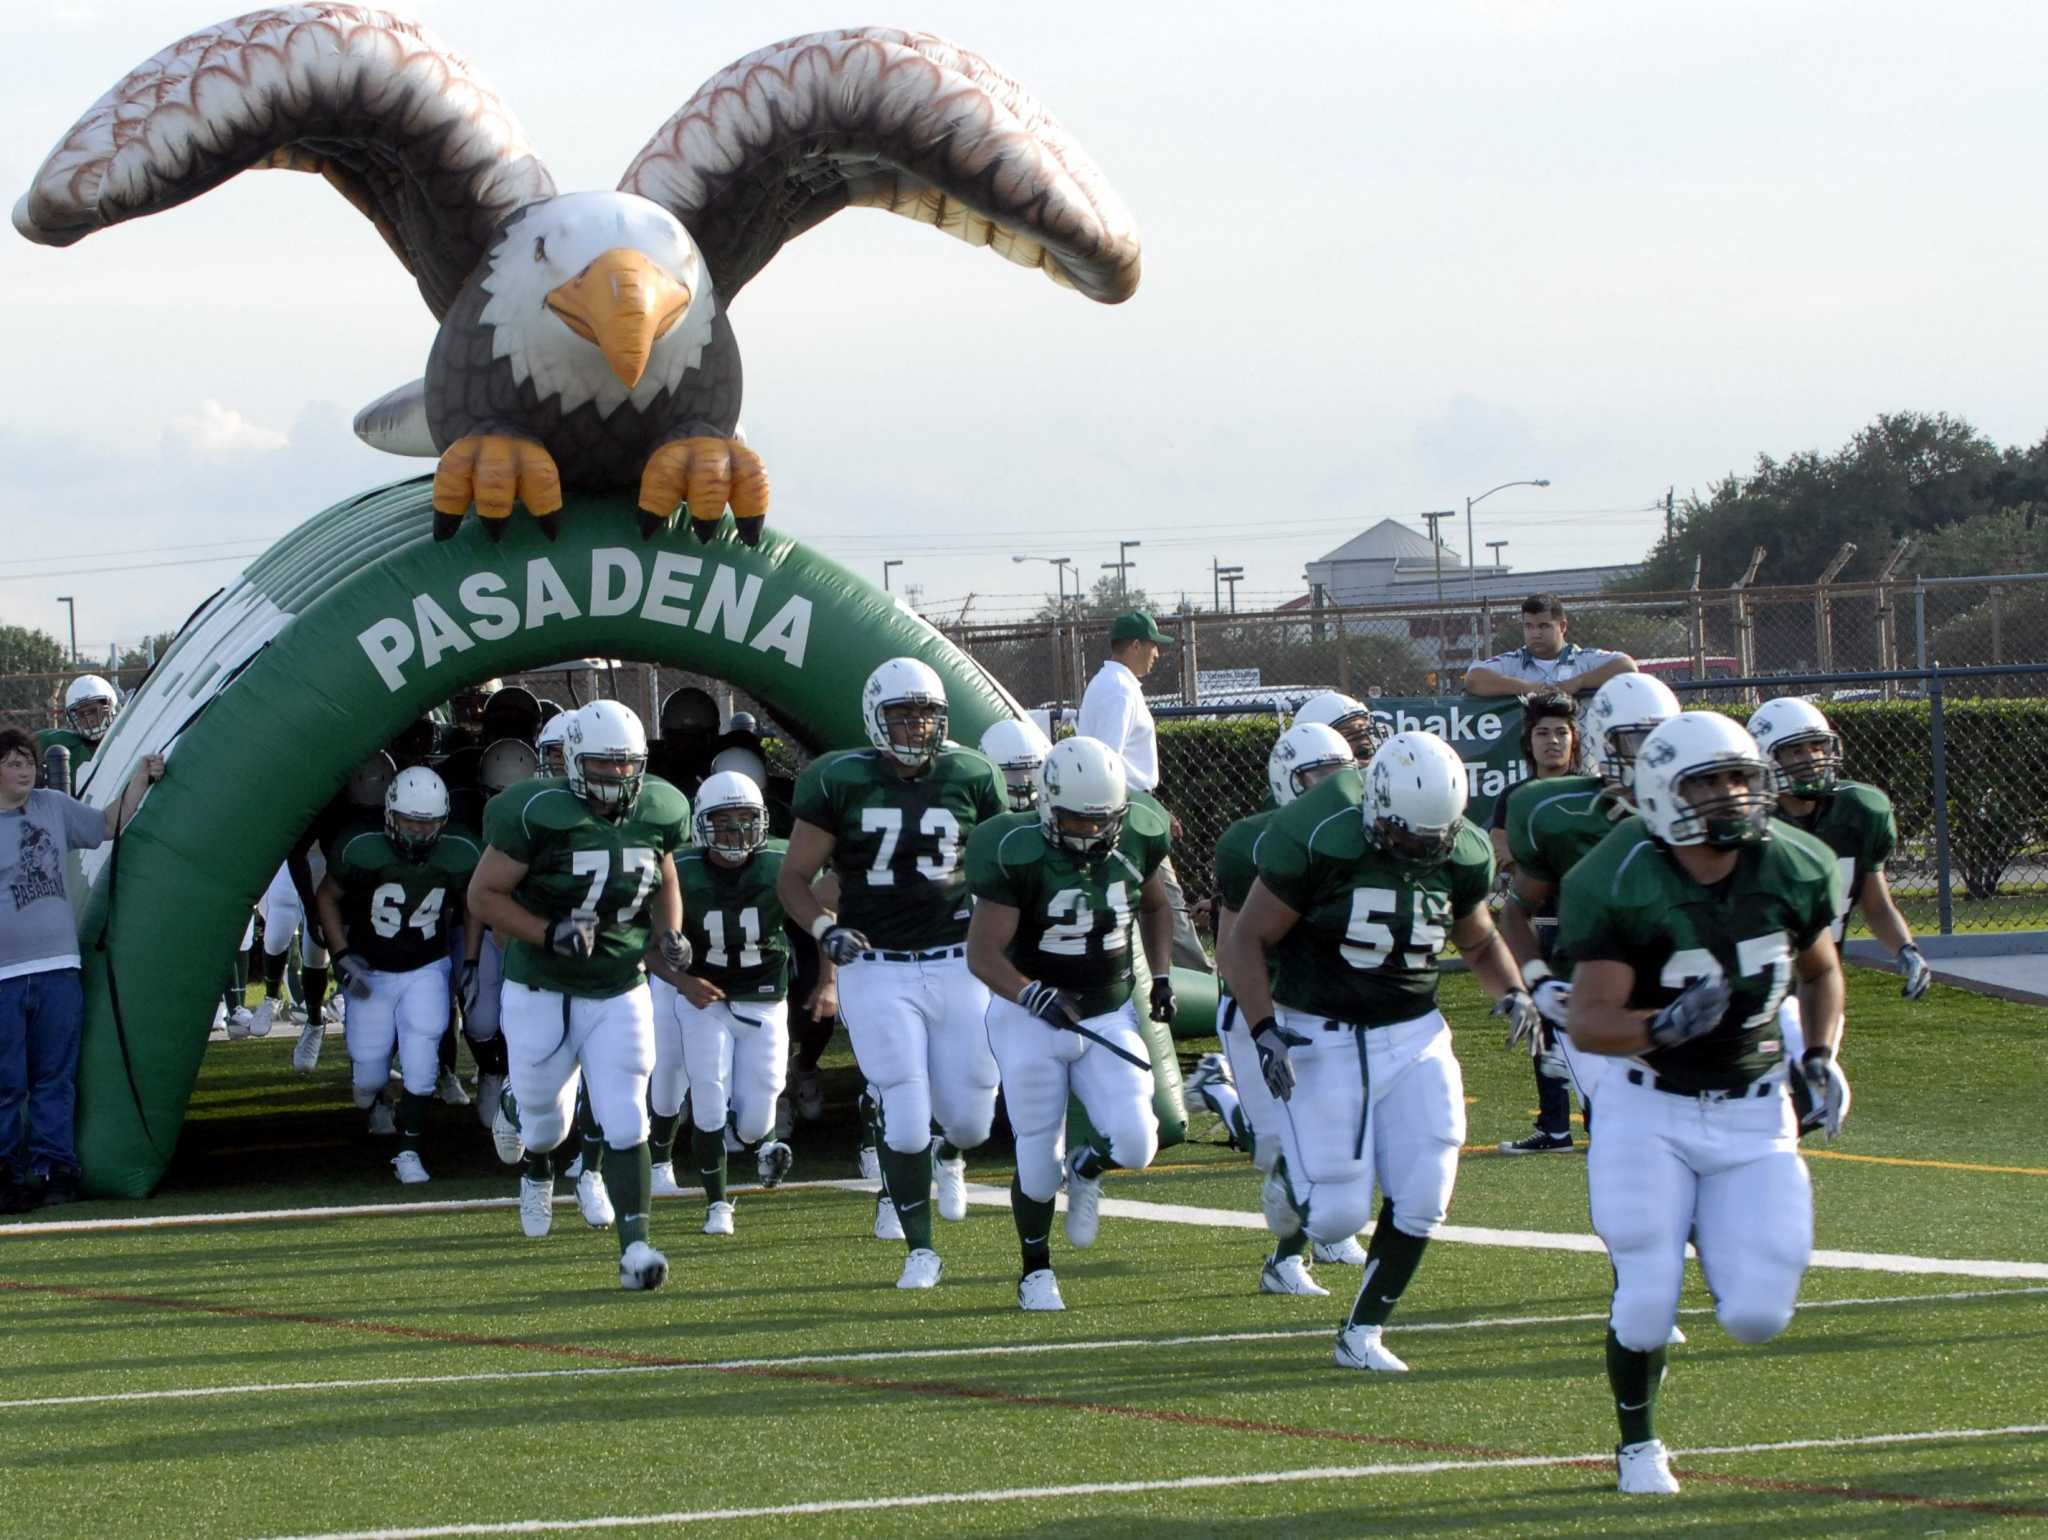 Pasadena ISD mascots have sparked legends, fierce pride